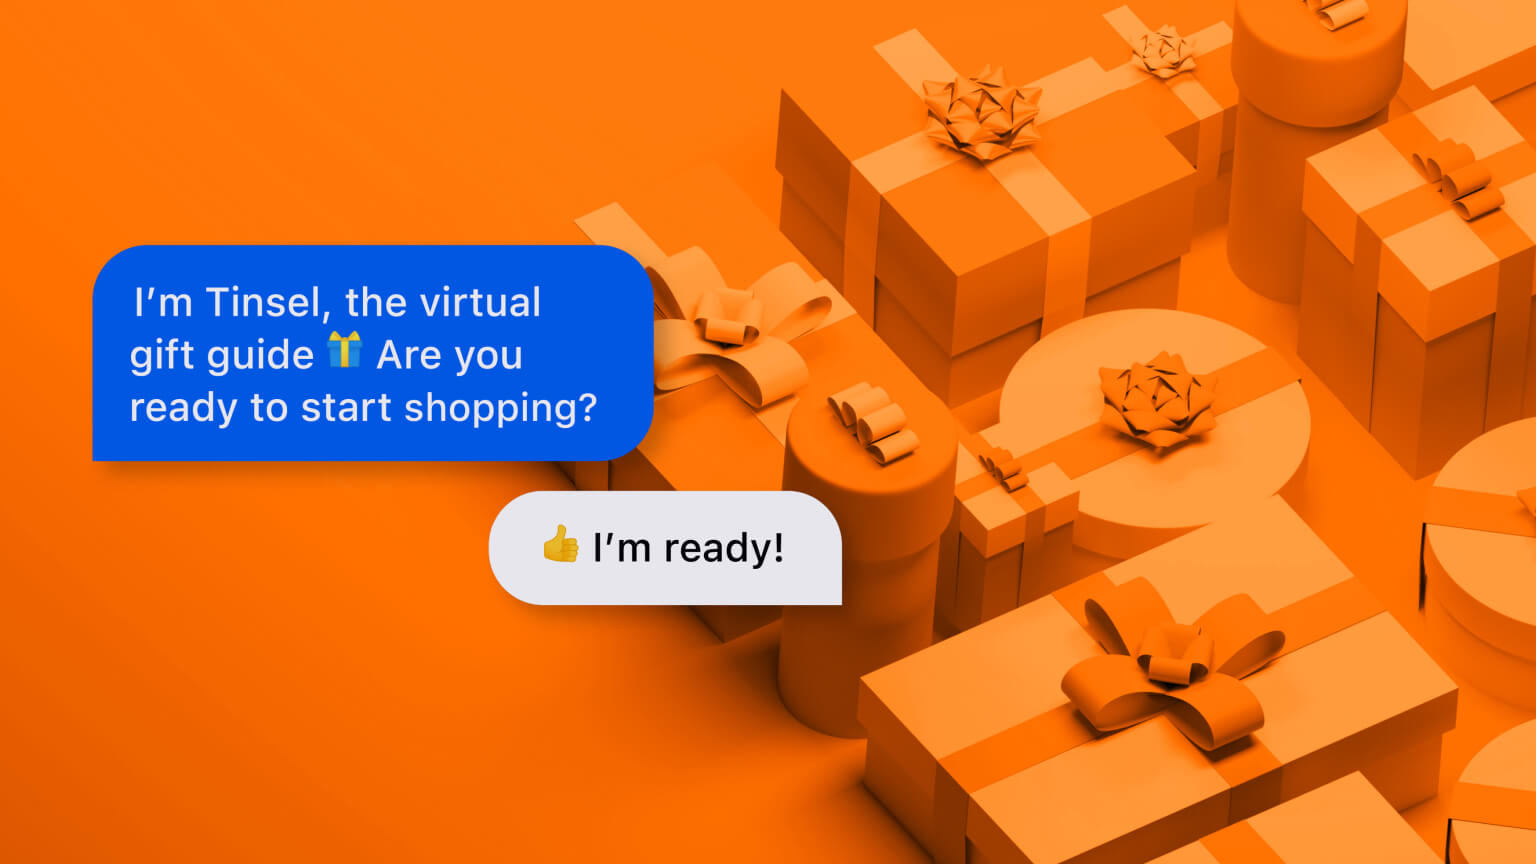 e-Commerce chatbot assisting a shopper over text messaging